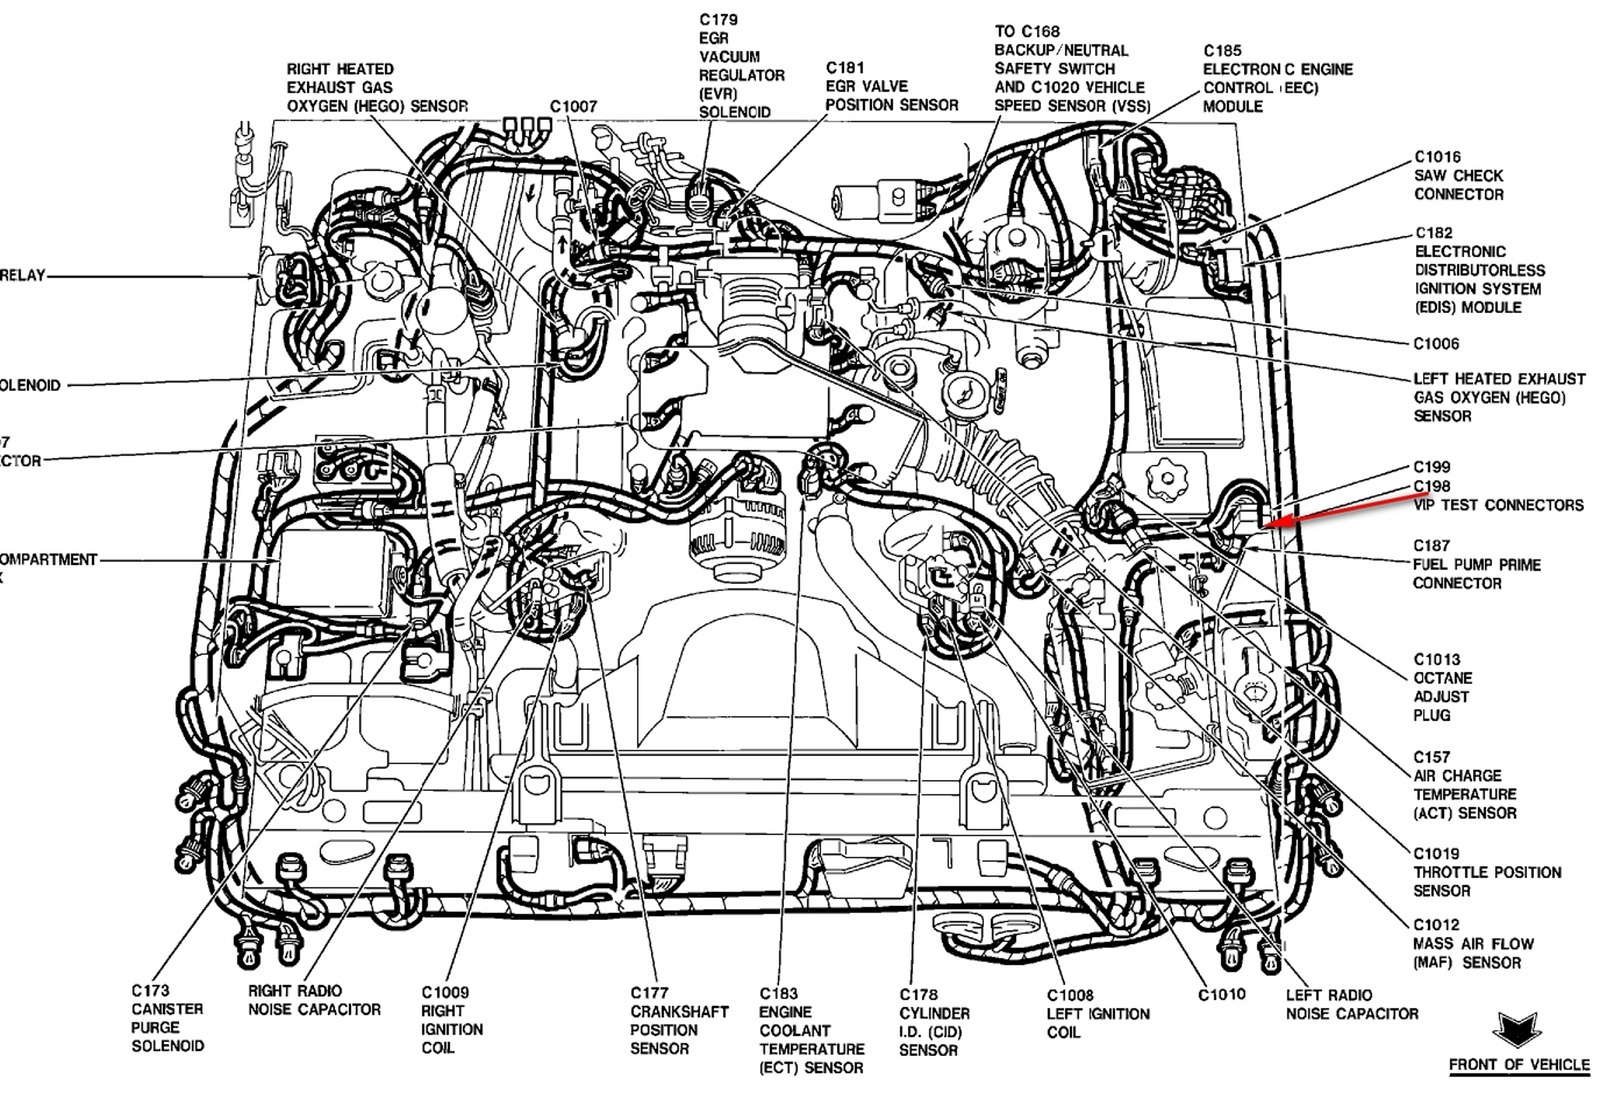 Discussion T16270 ds545905 on 96 toyota camry vacuum hose diagram